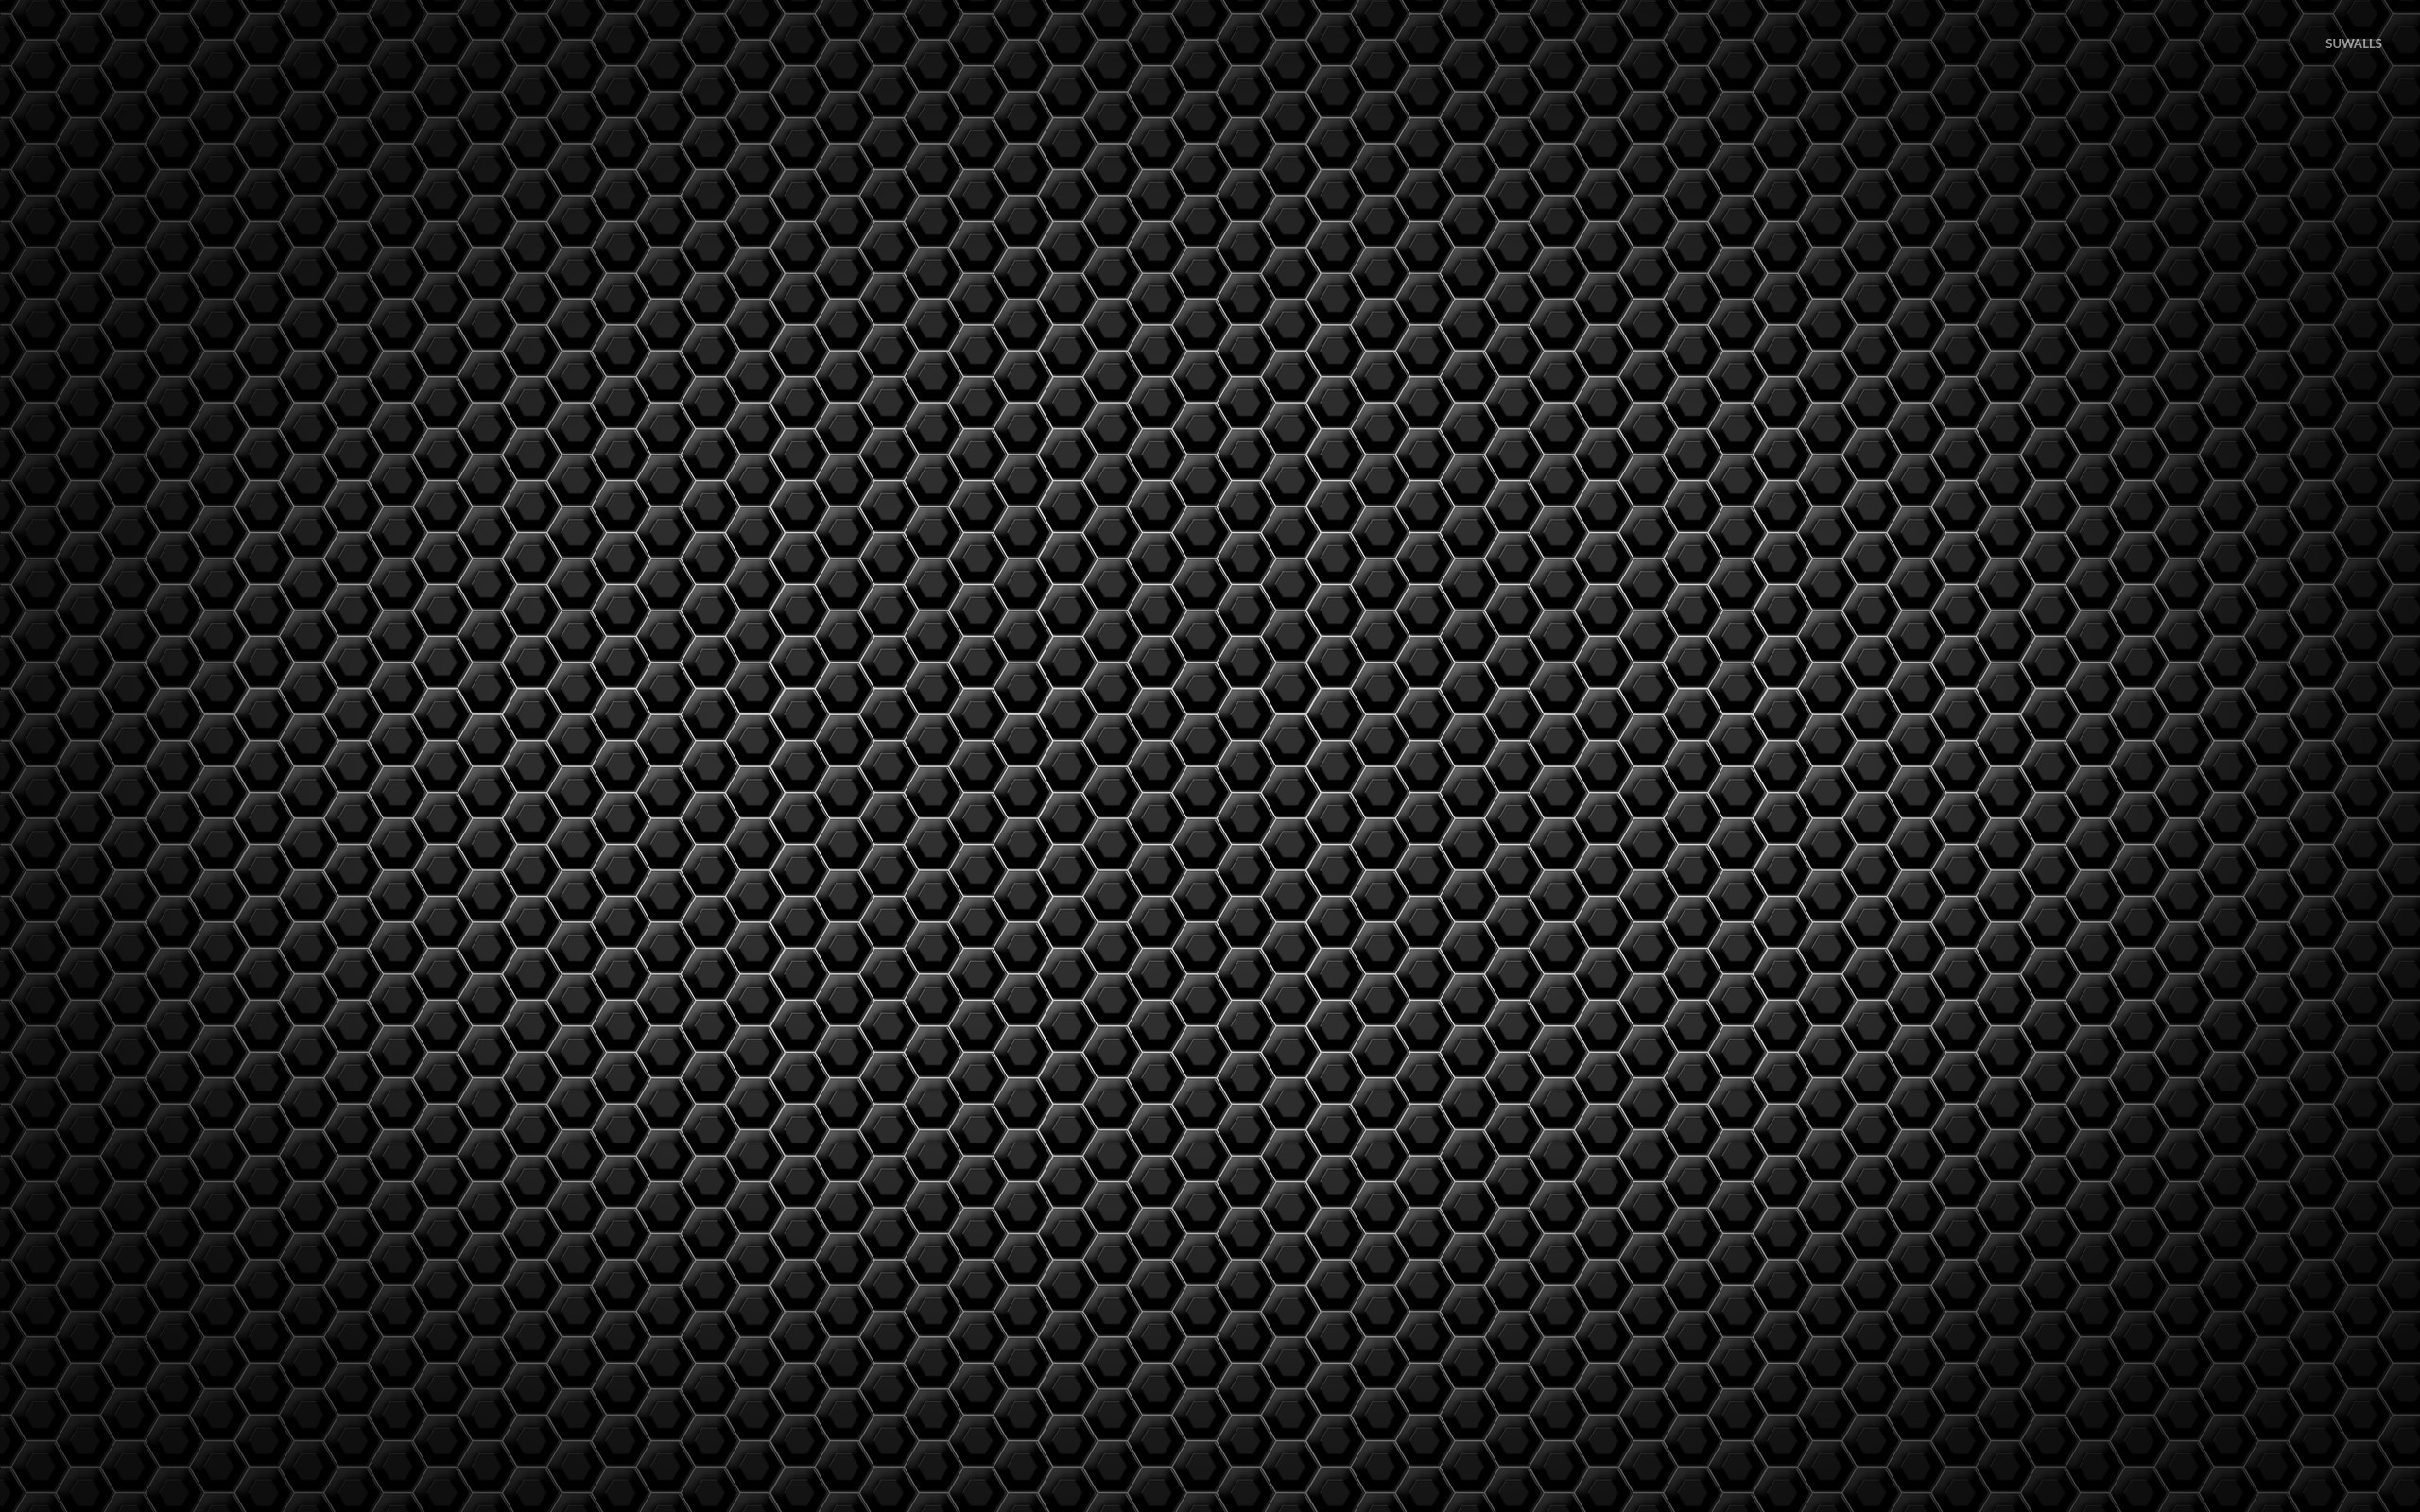 Metallic honeycomb pattern wallpaper abstract wallpapers for Metallic wallpaper